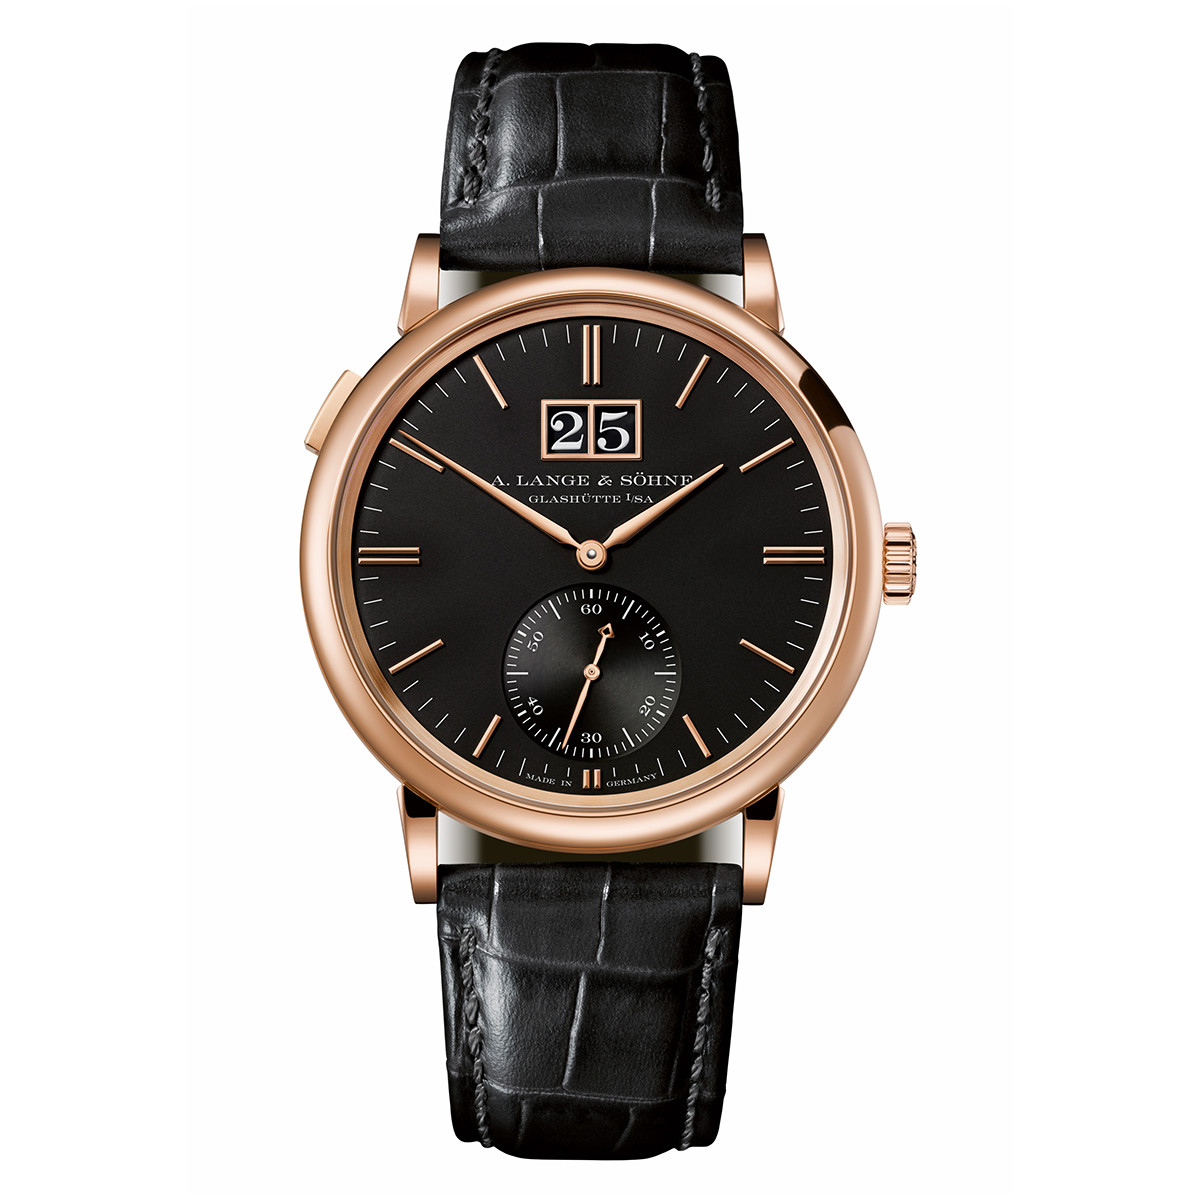 Saxonia Outsize Date Rose Gold (381.031)